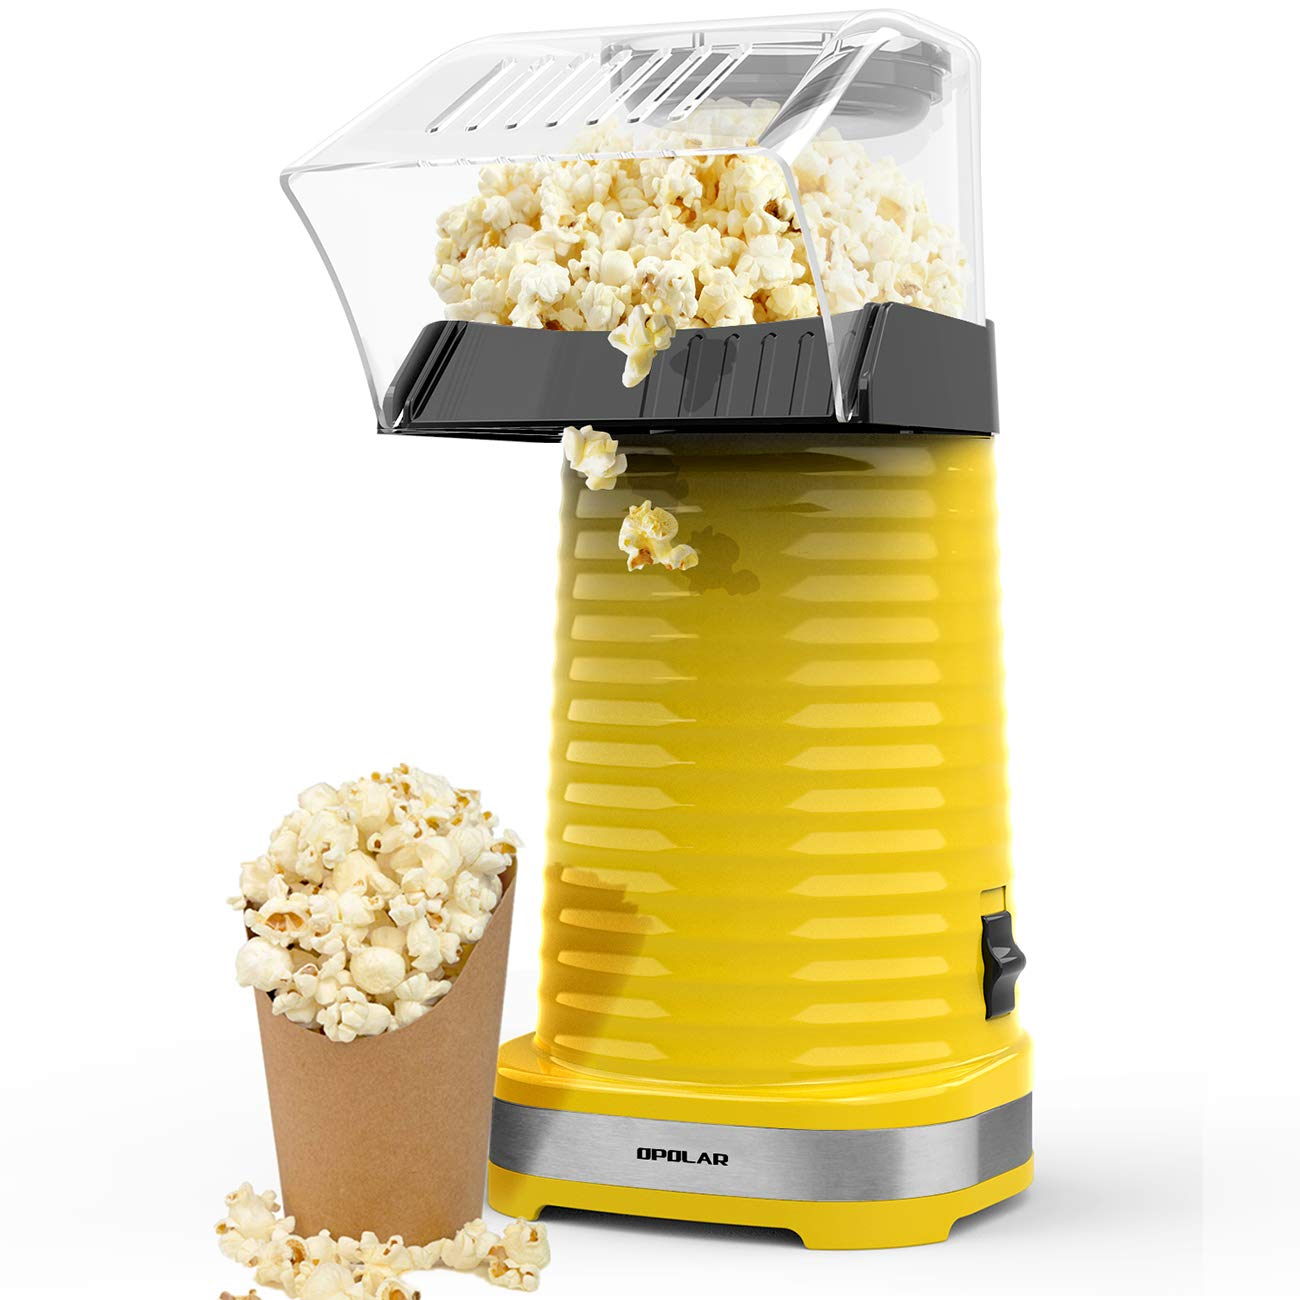 OPOLAR Hot Air Popcorn Popper Electric Machine, Fast Popcorn Maker with Measuring Cup and Removable Top Cover, Ideal for Watching Movies and Holding Parties in Home, Healthy, 1200W, BPA-Free Yellow